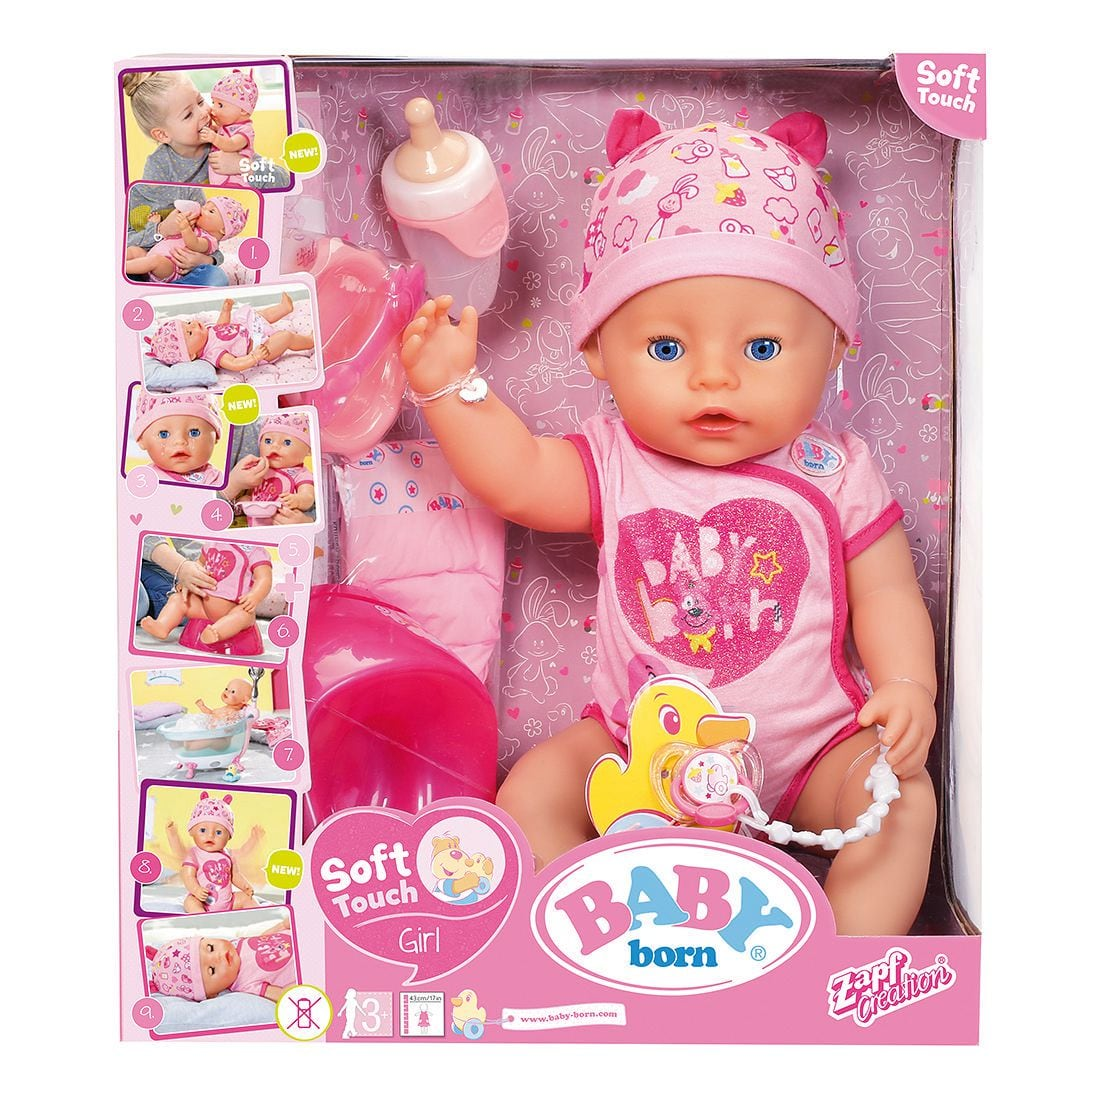 Baby Dolls Vip Baby Born Soft Touch Doll Girl